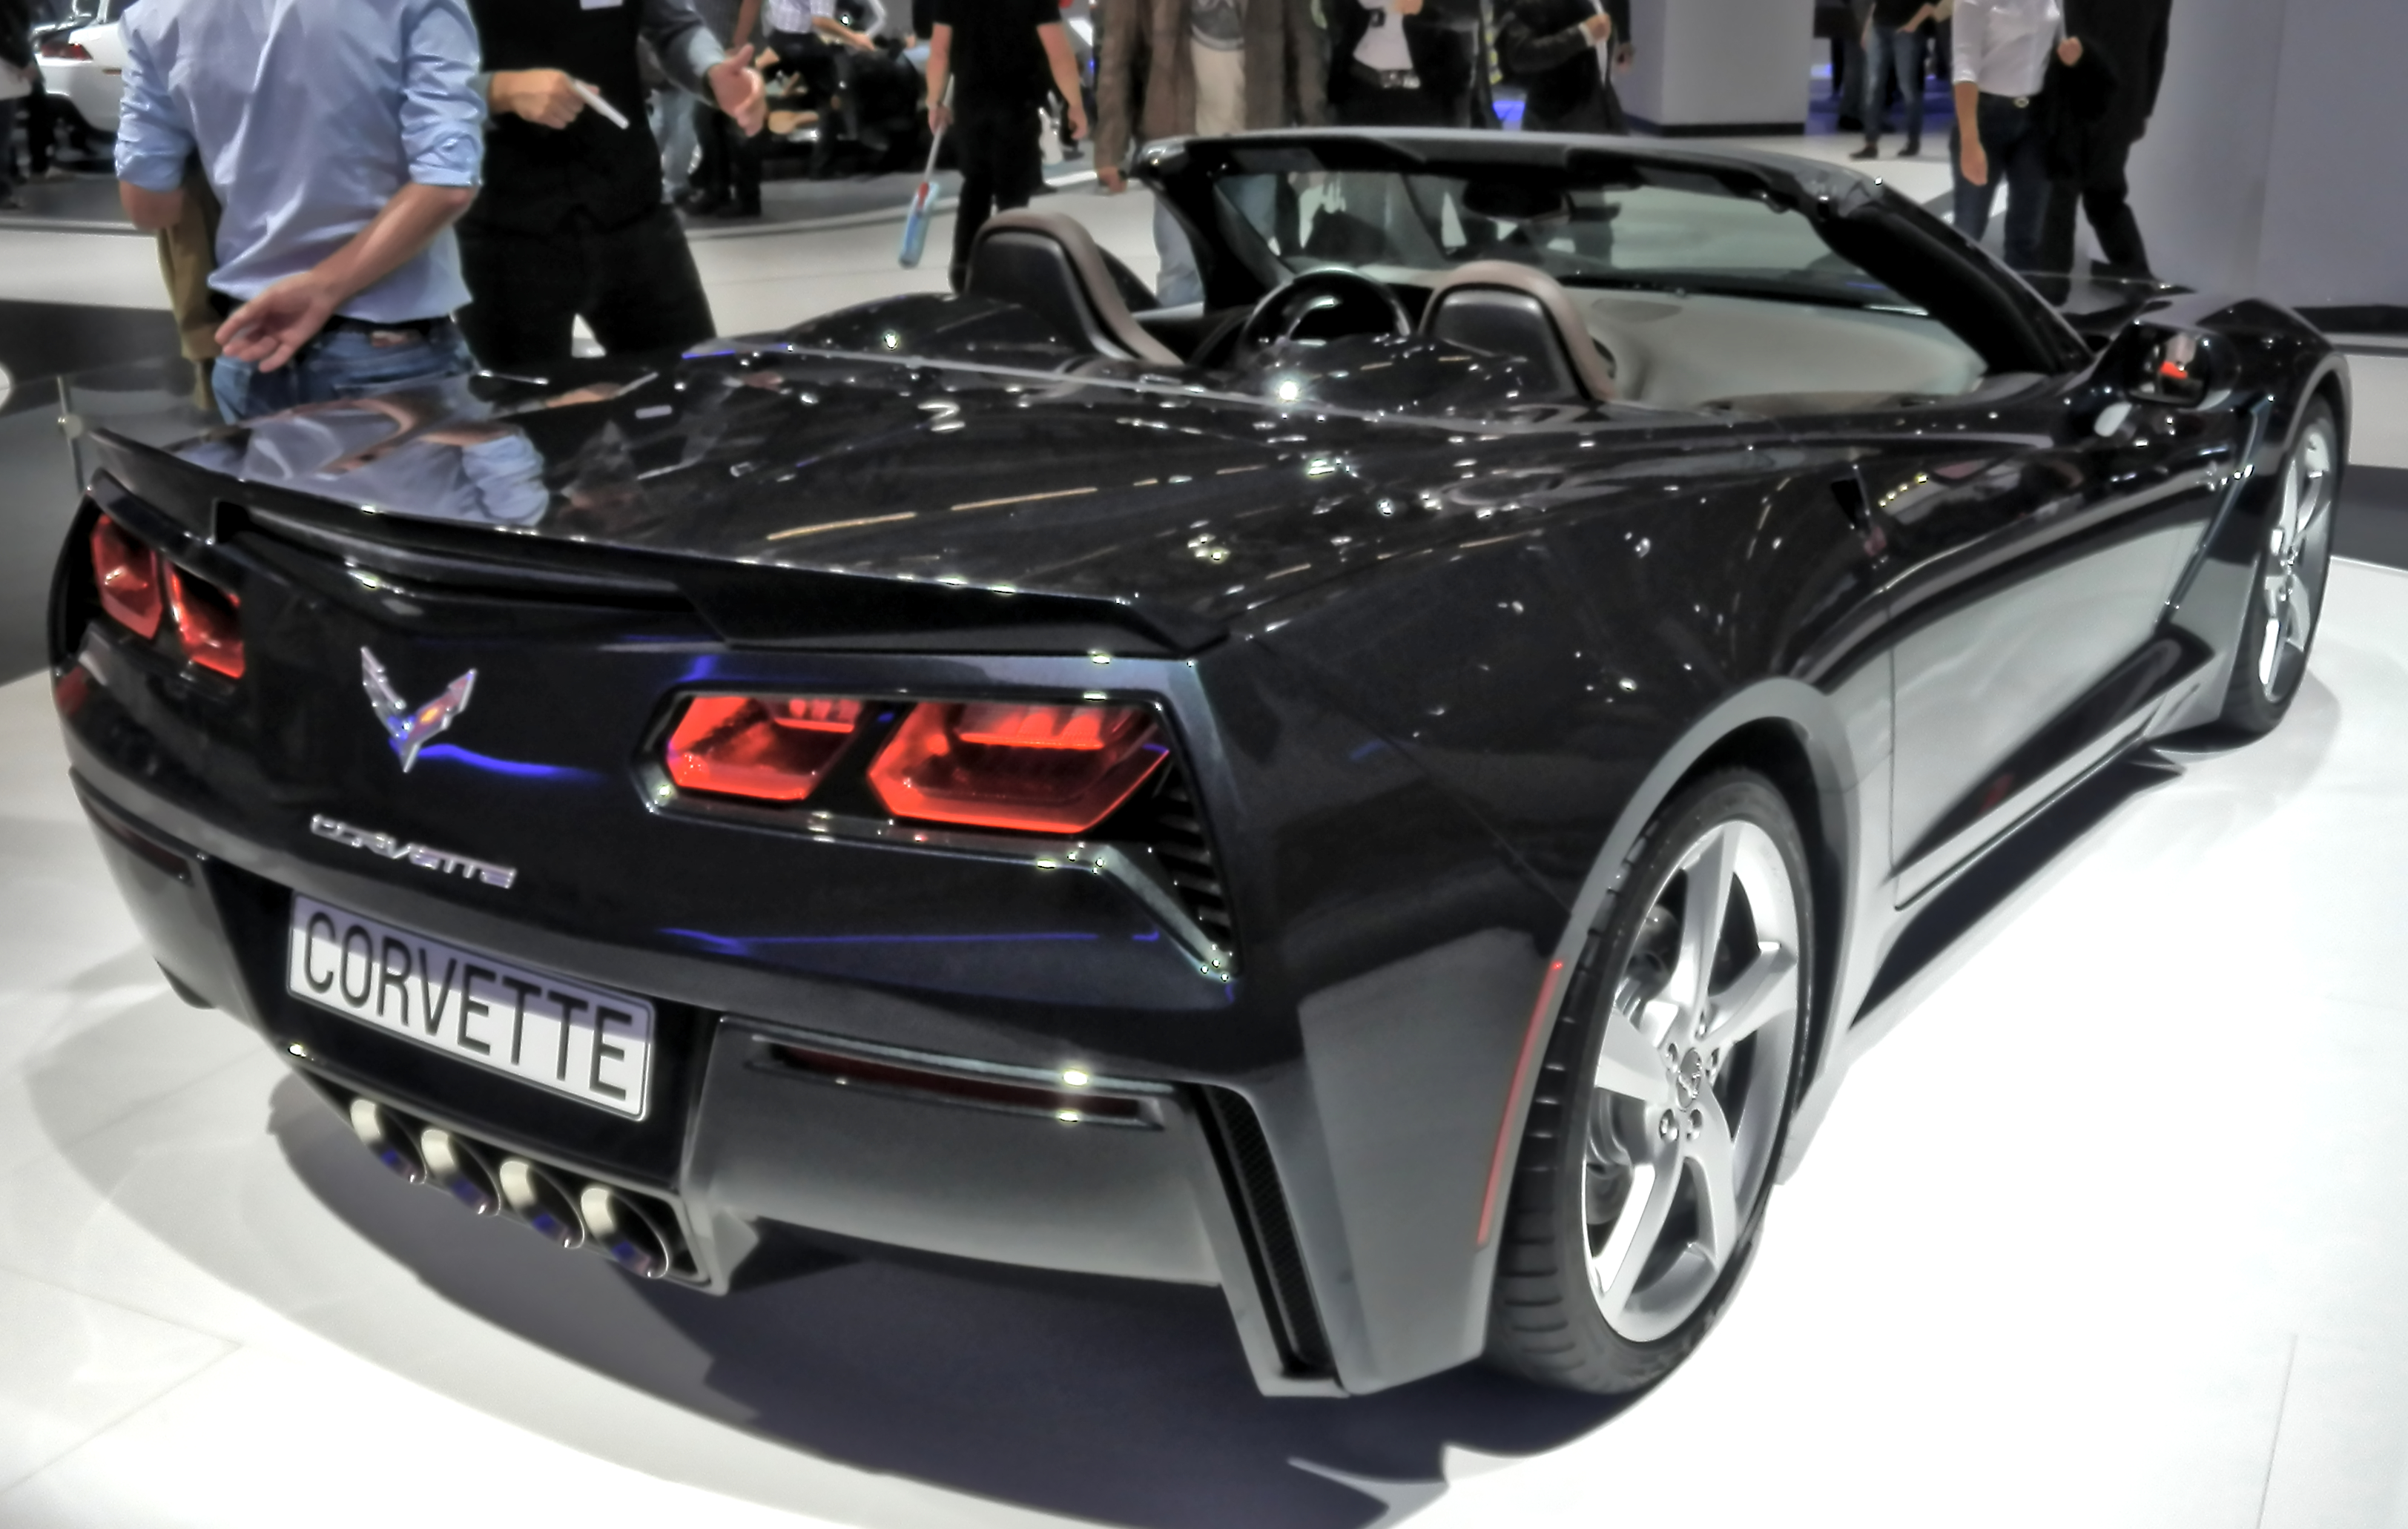 File:Chevrolet Corvette C7 Convertible Back IAA 2013